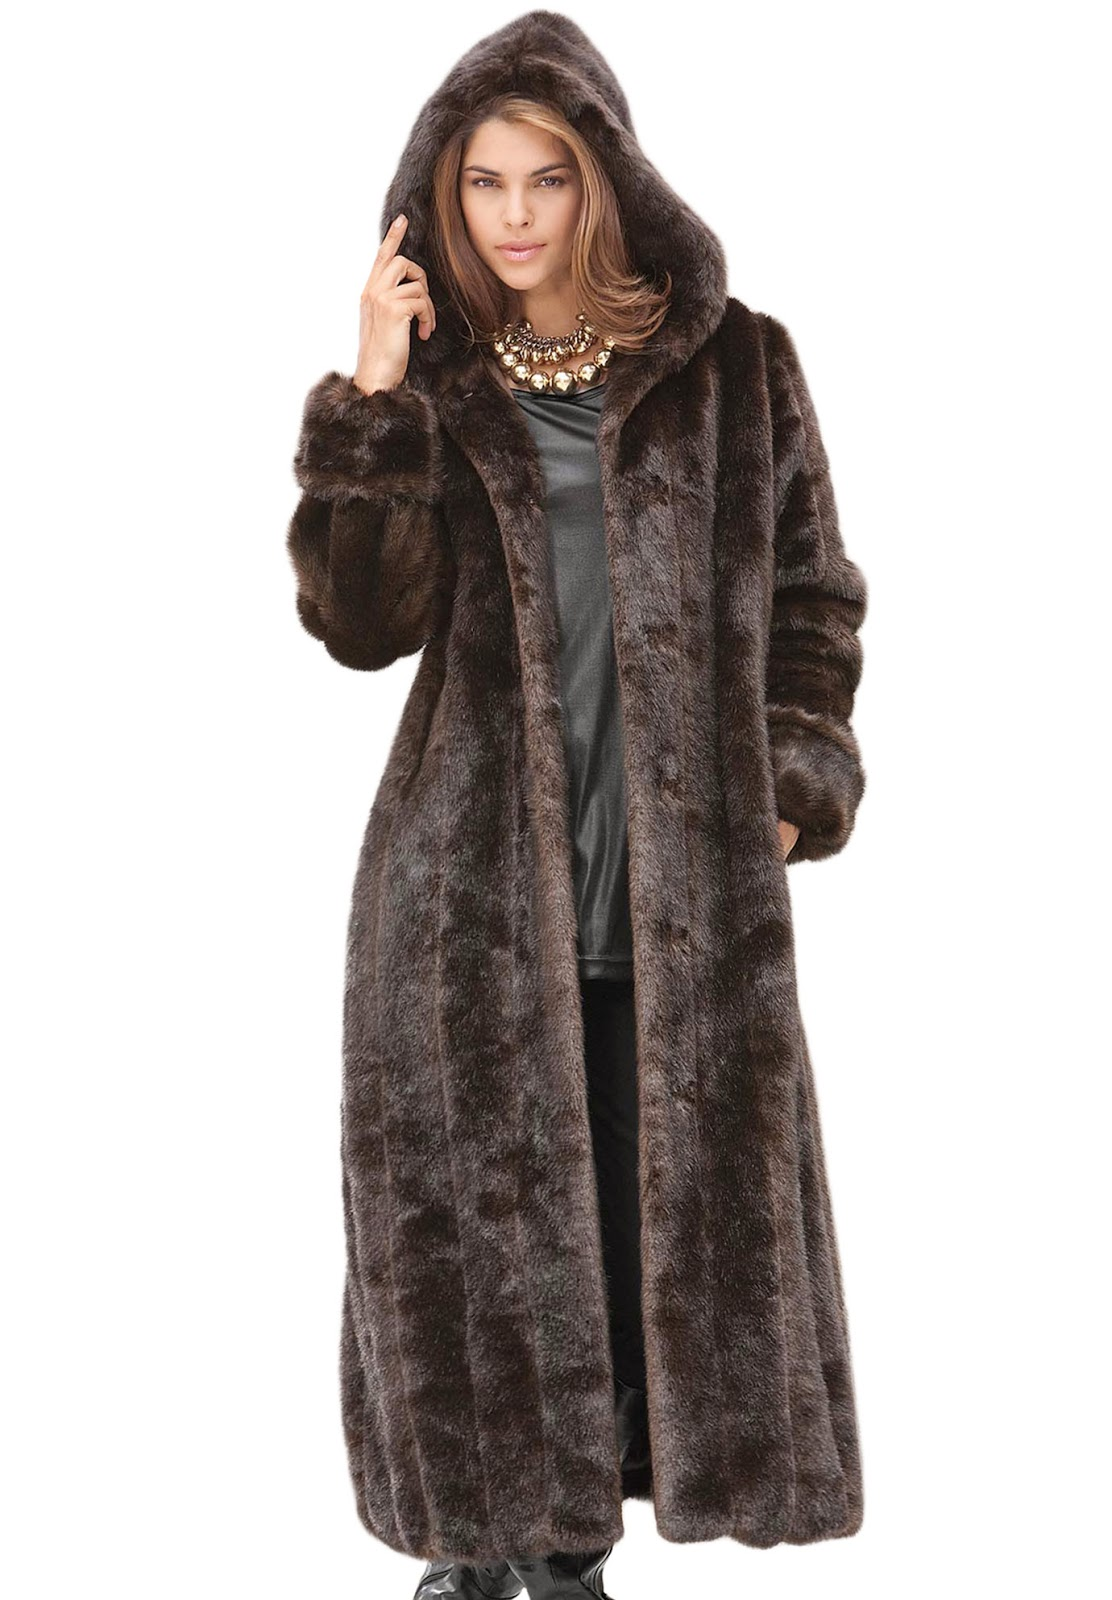 Shop our extensive line of women's faux fur coats and jackets made available in everything from hooded and full-length coats to mink and leopard printed.